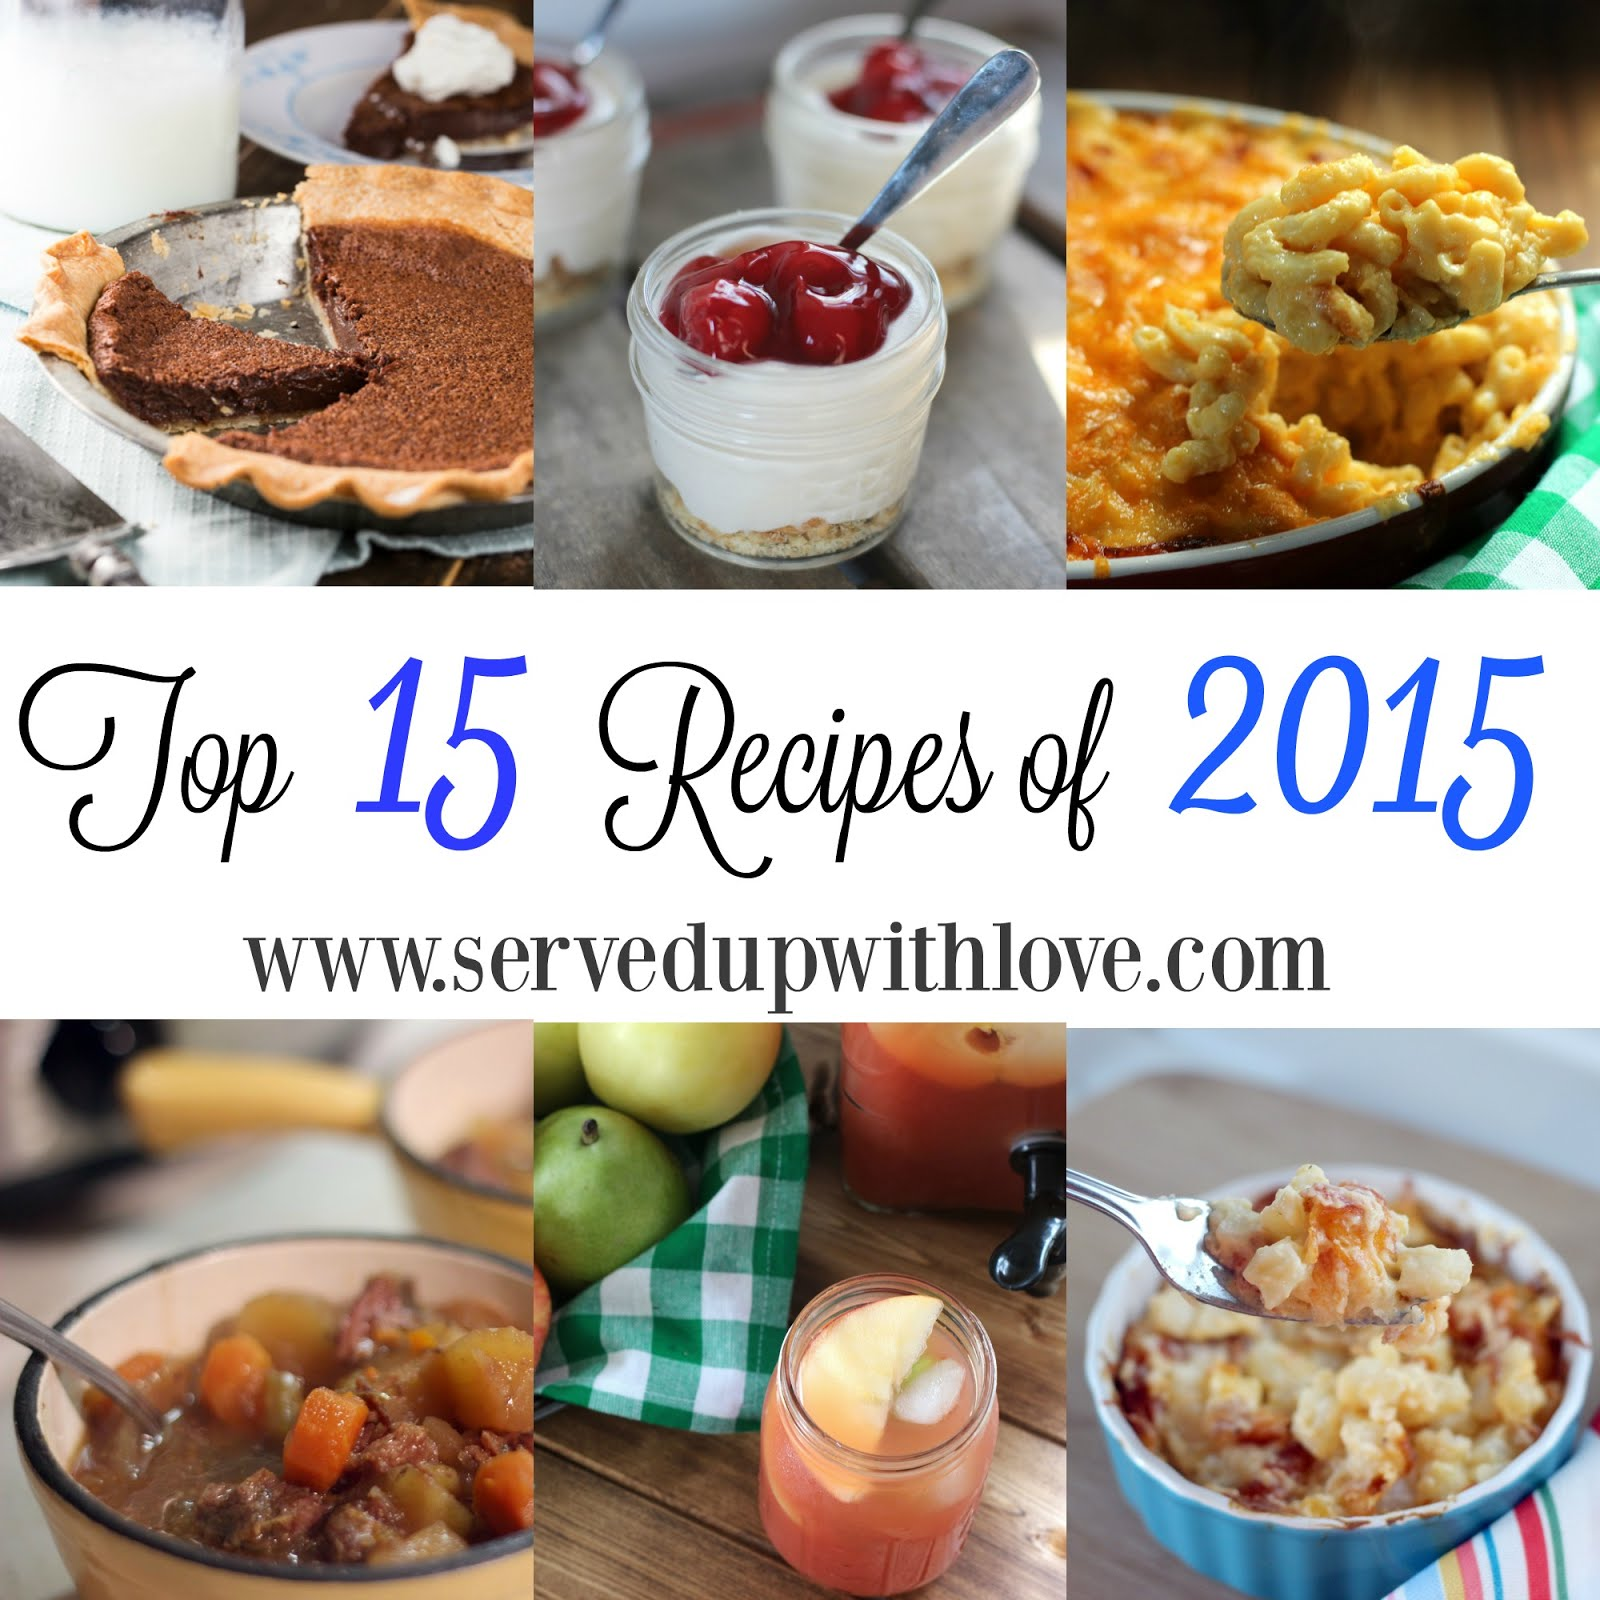 *Top 15 Recipes of 2015*